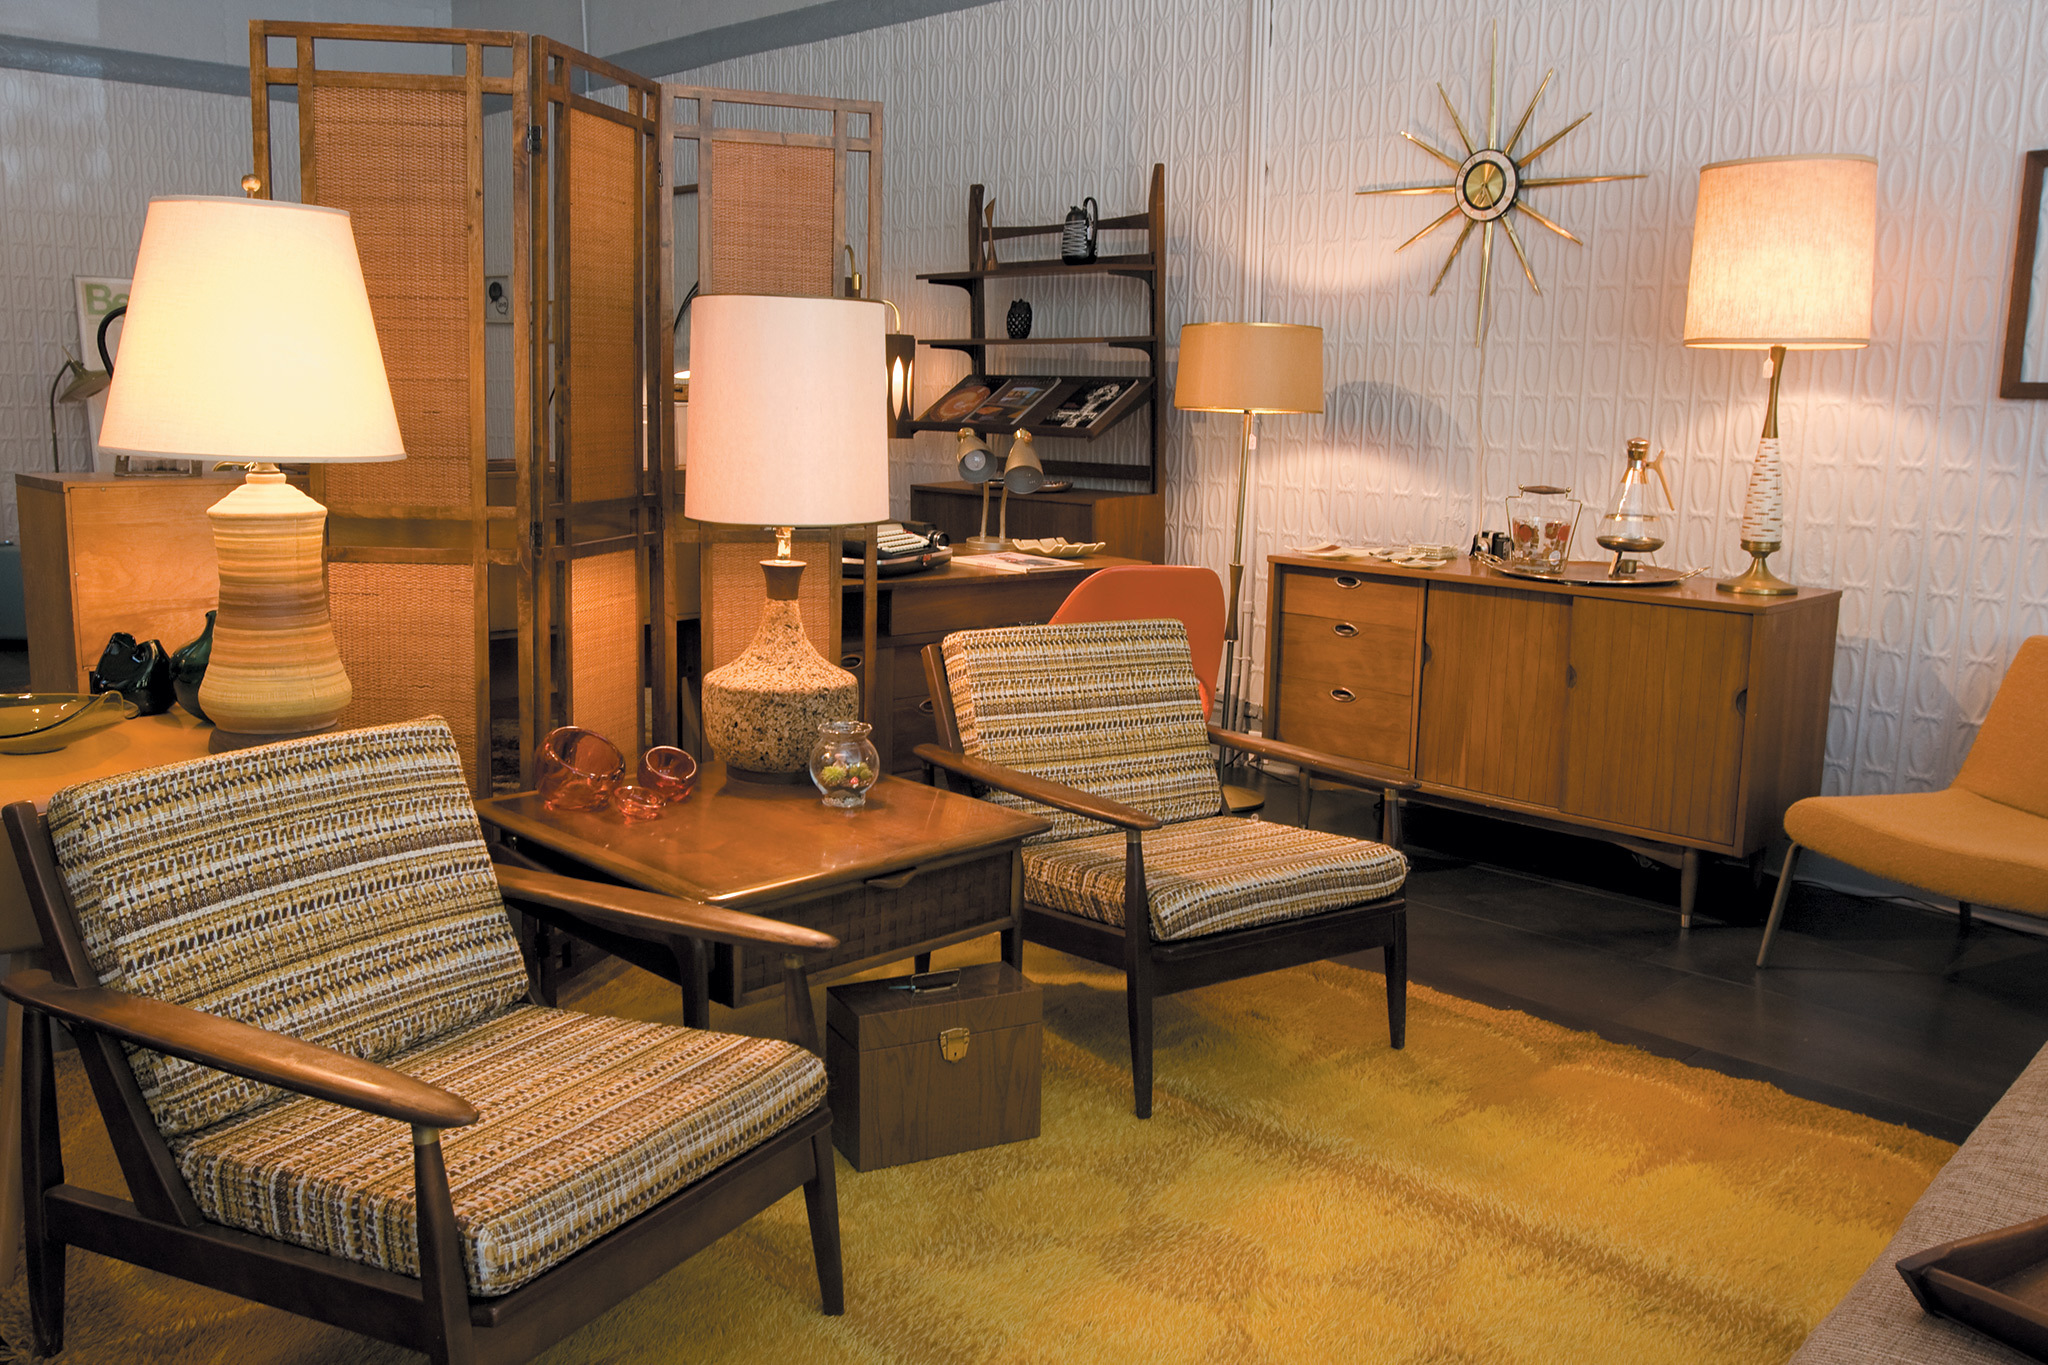 Modern Co op. Furniture stores in Chicago for home goods and home decor